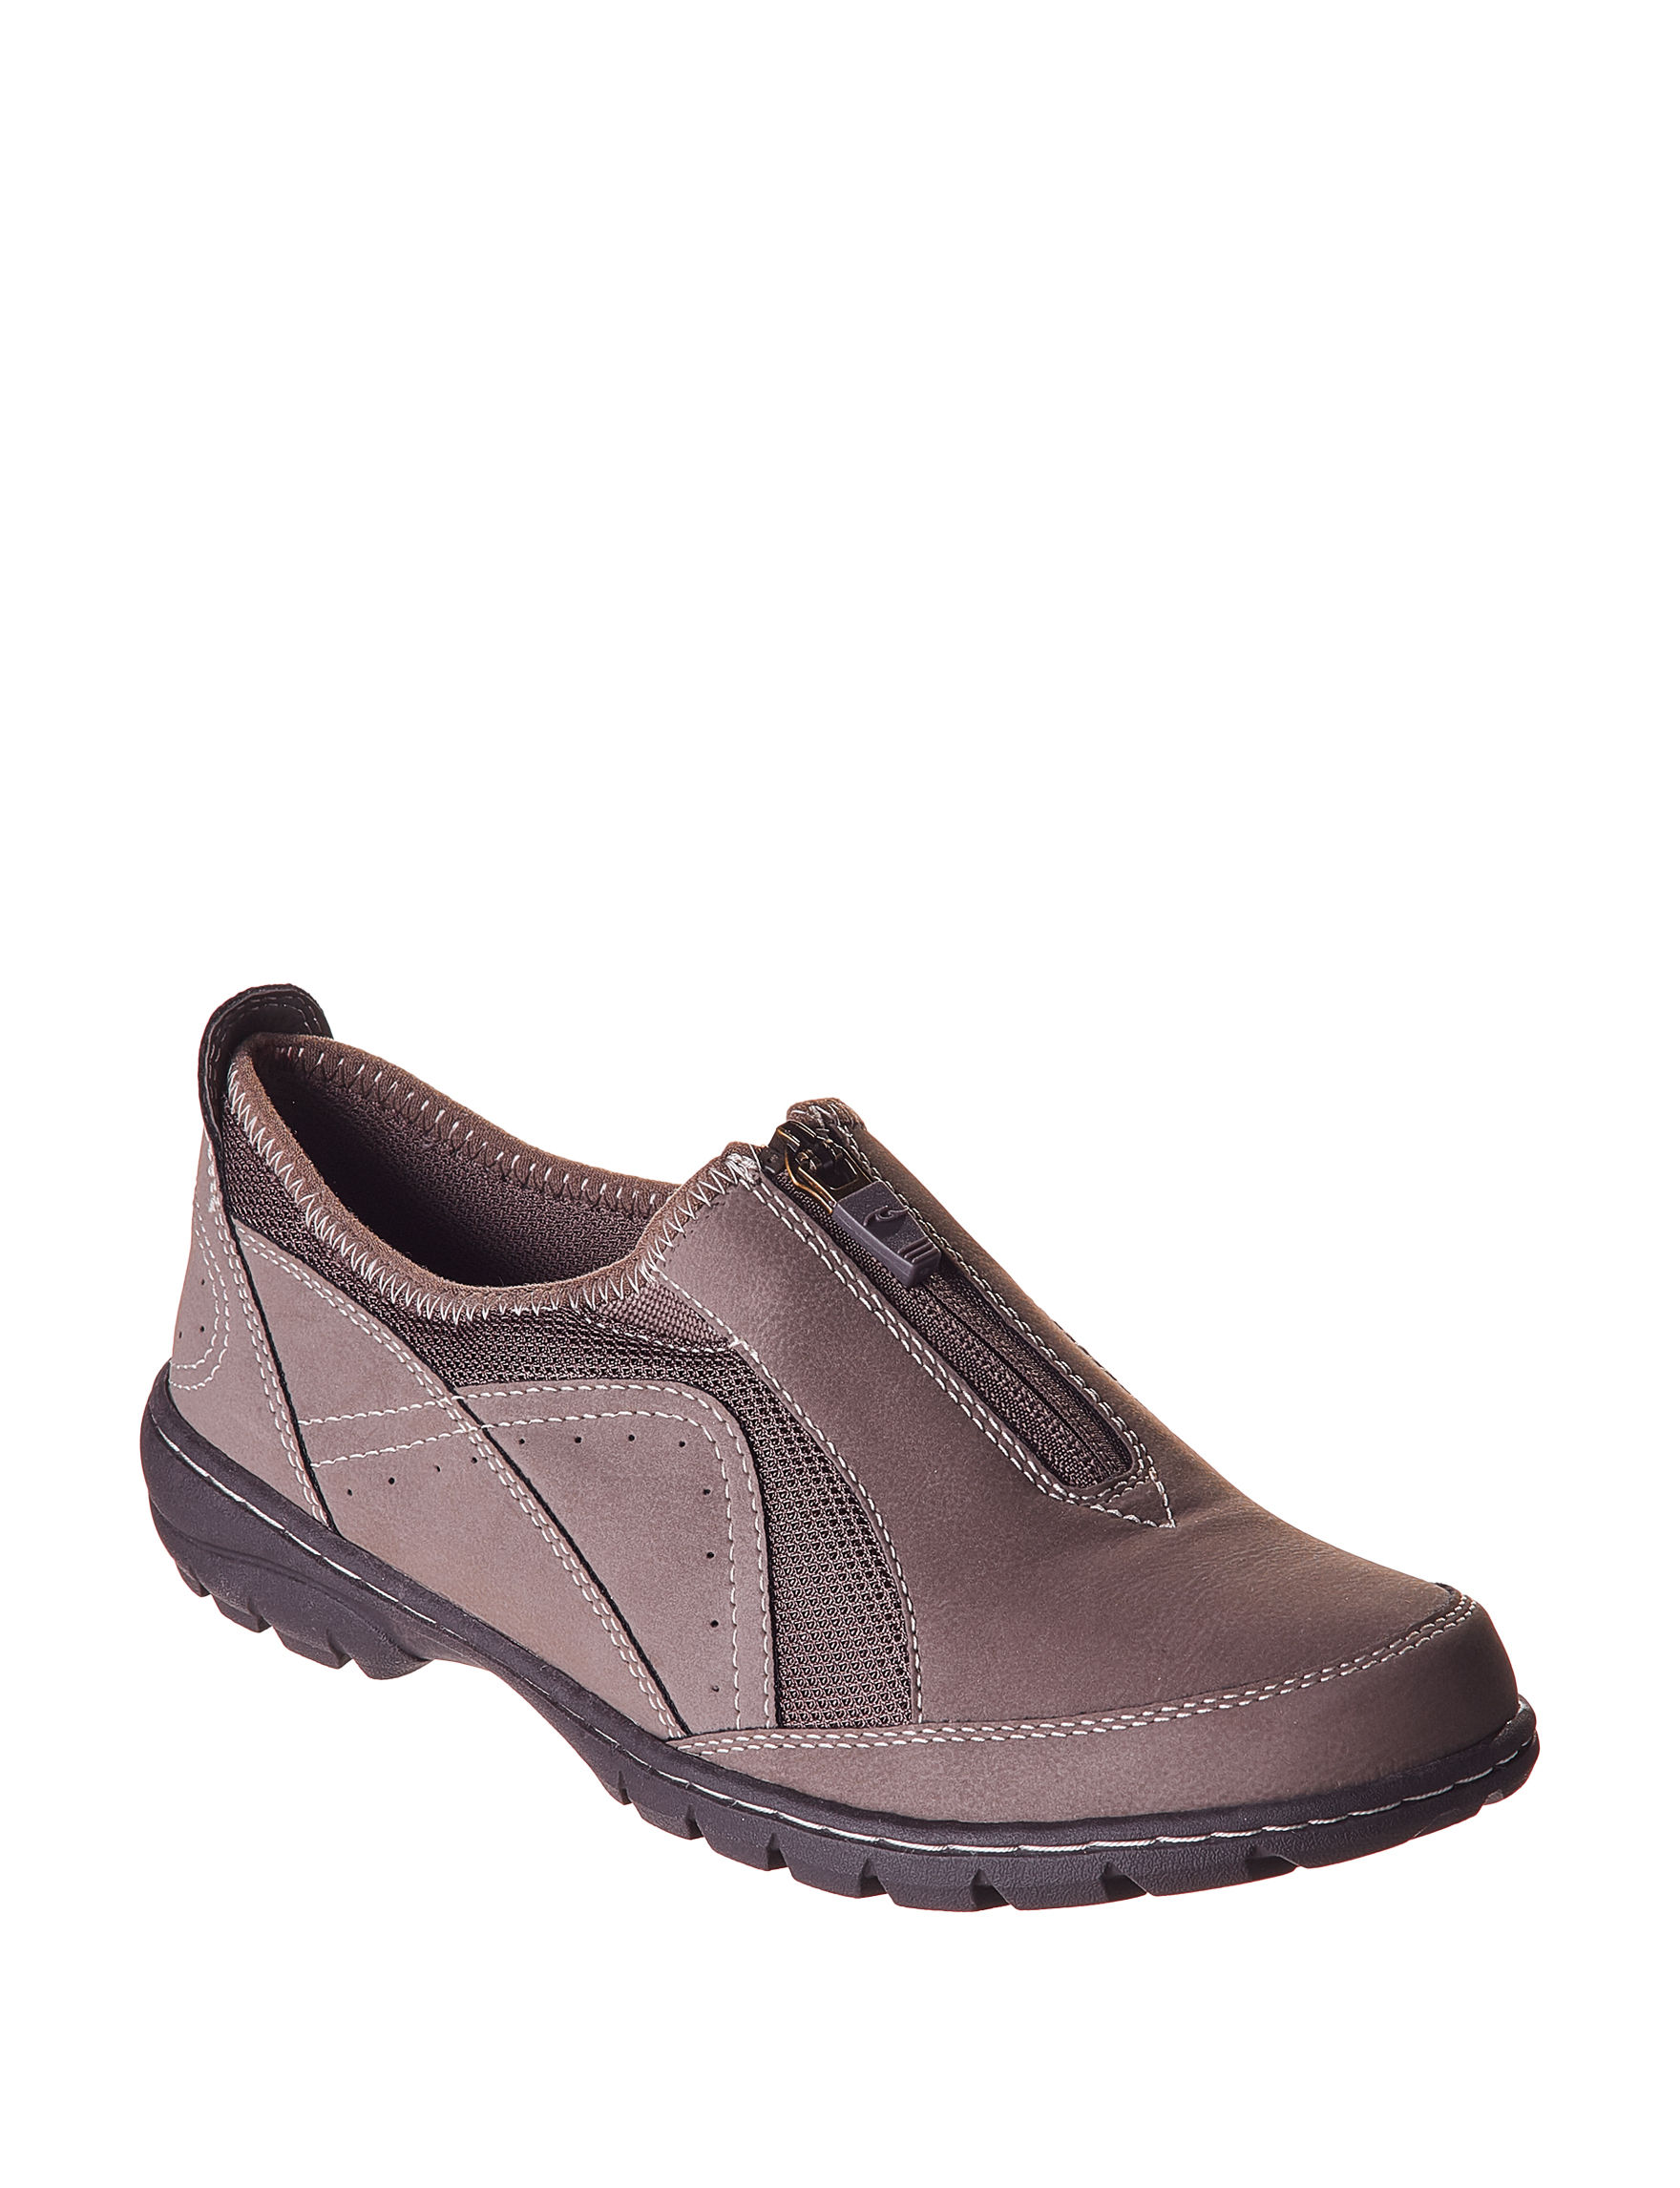 Dr. Scholl's Taupe Comfort Shoes